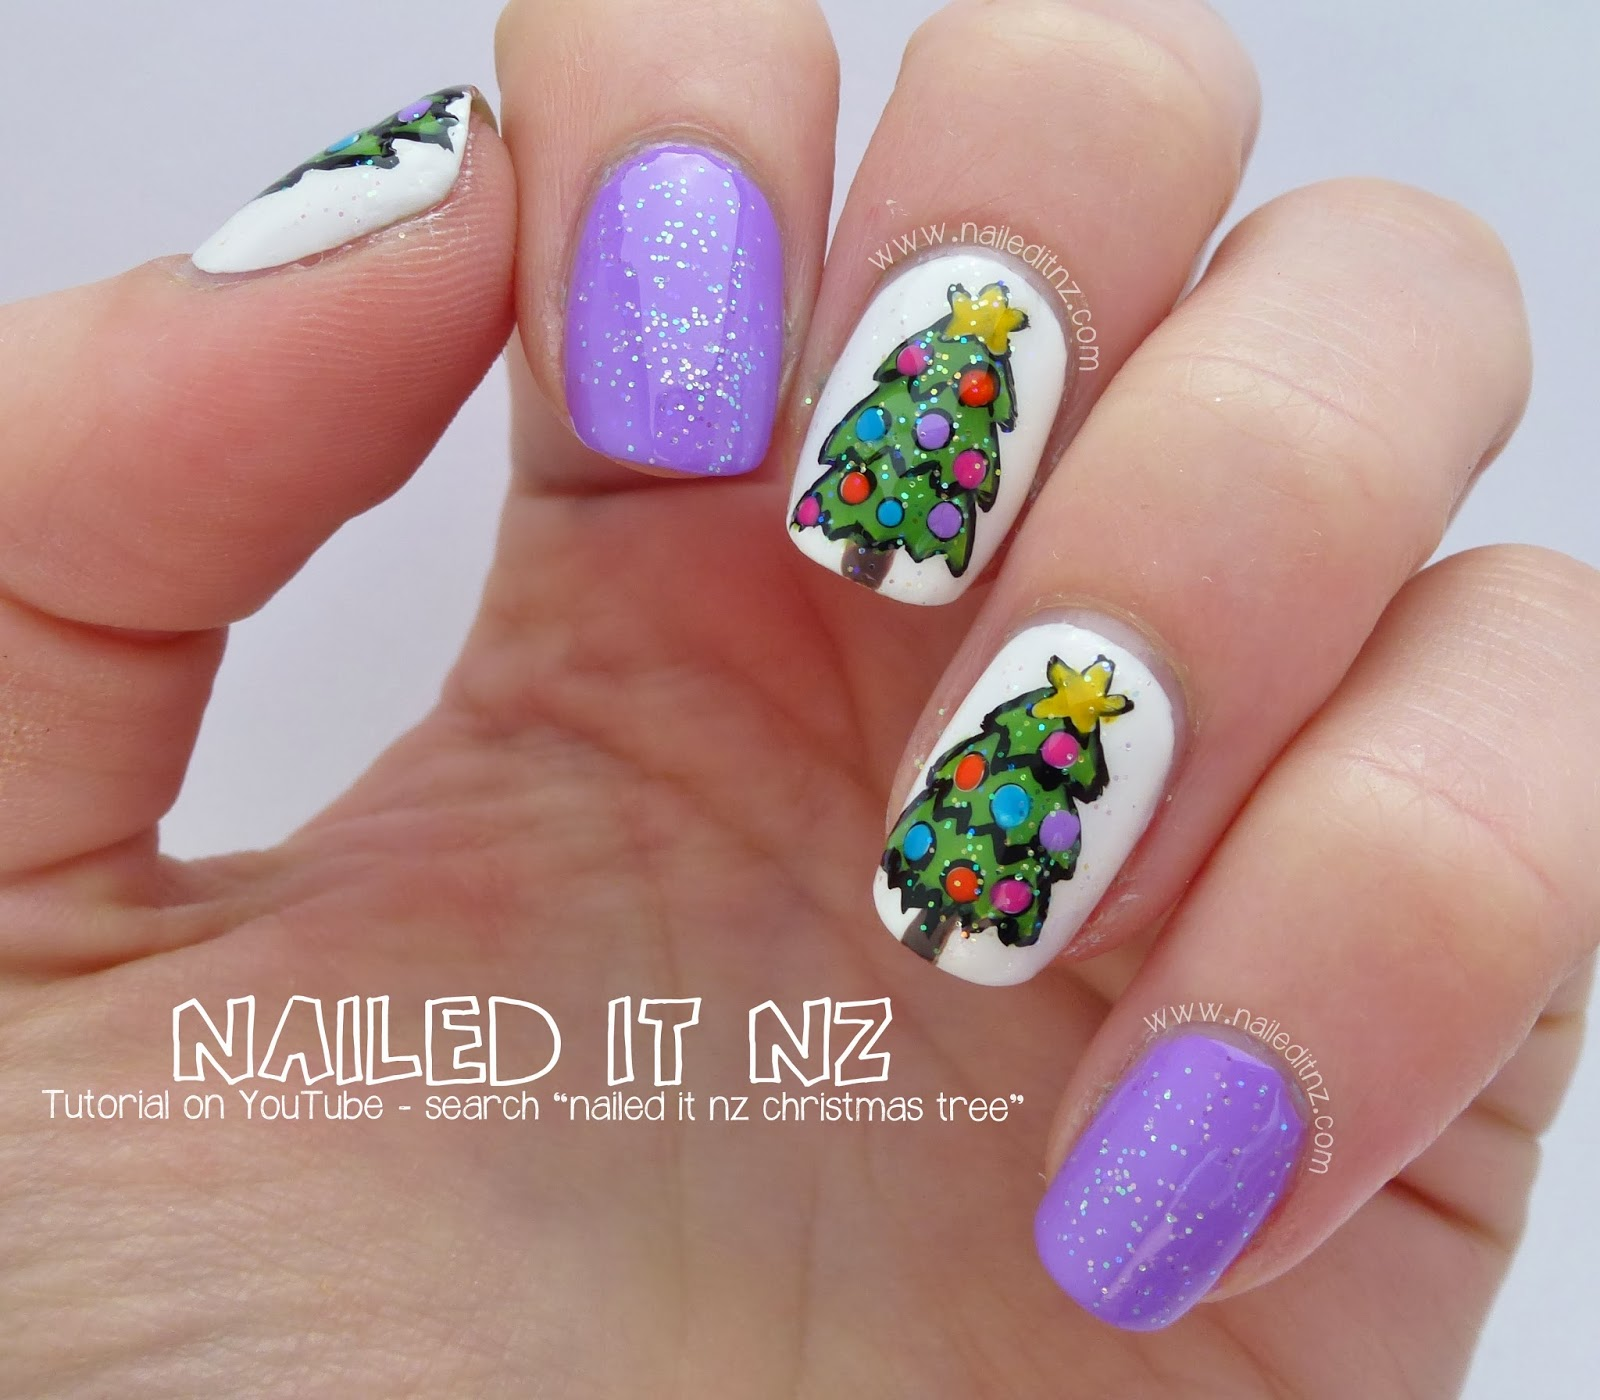 Christmas 2013 Nail Art: Christmas Tree Nail Art Tutorial